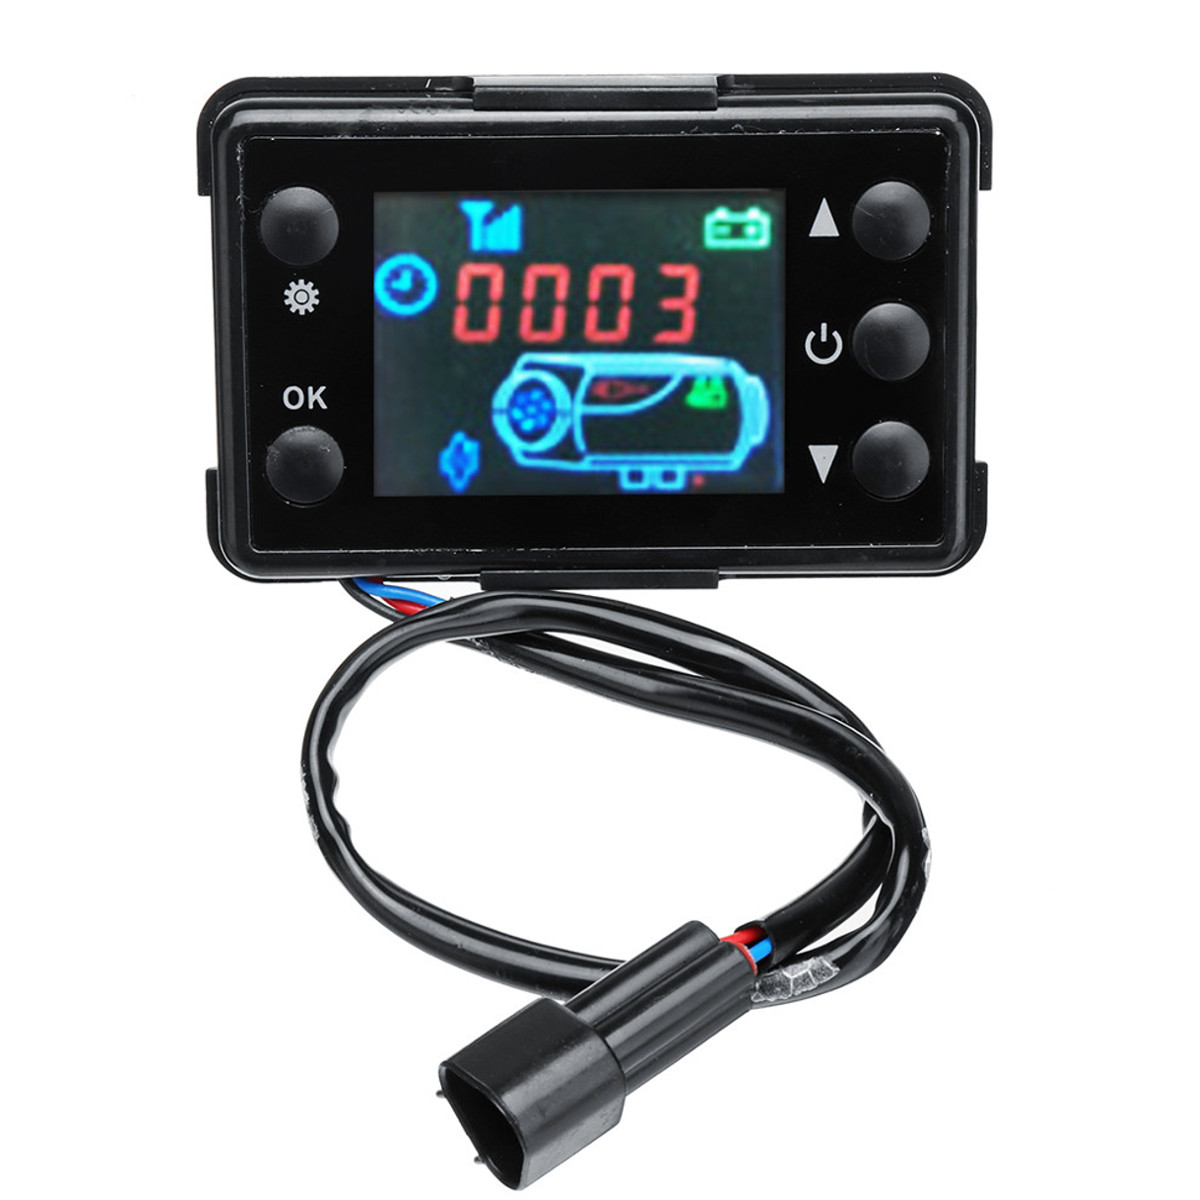 12v/24v 3/5kw Lcd Monitor Parking Heater Switch Car Heating Device Controller Universal For Car Track Air Heater Skilful Manufacture Atv,rv,boat & Other Vehicle